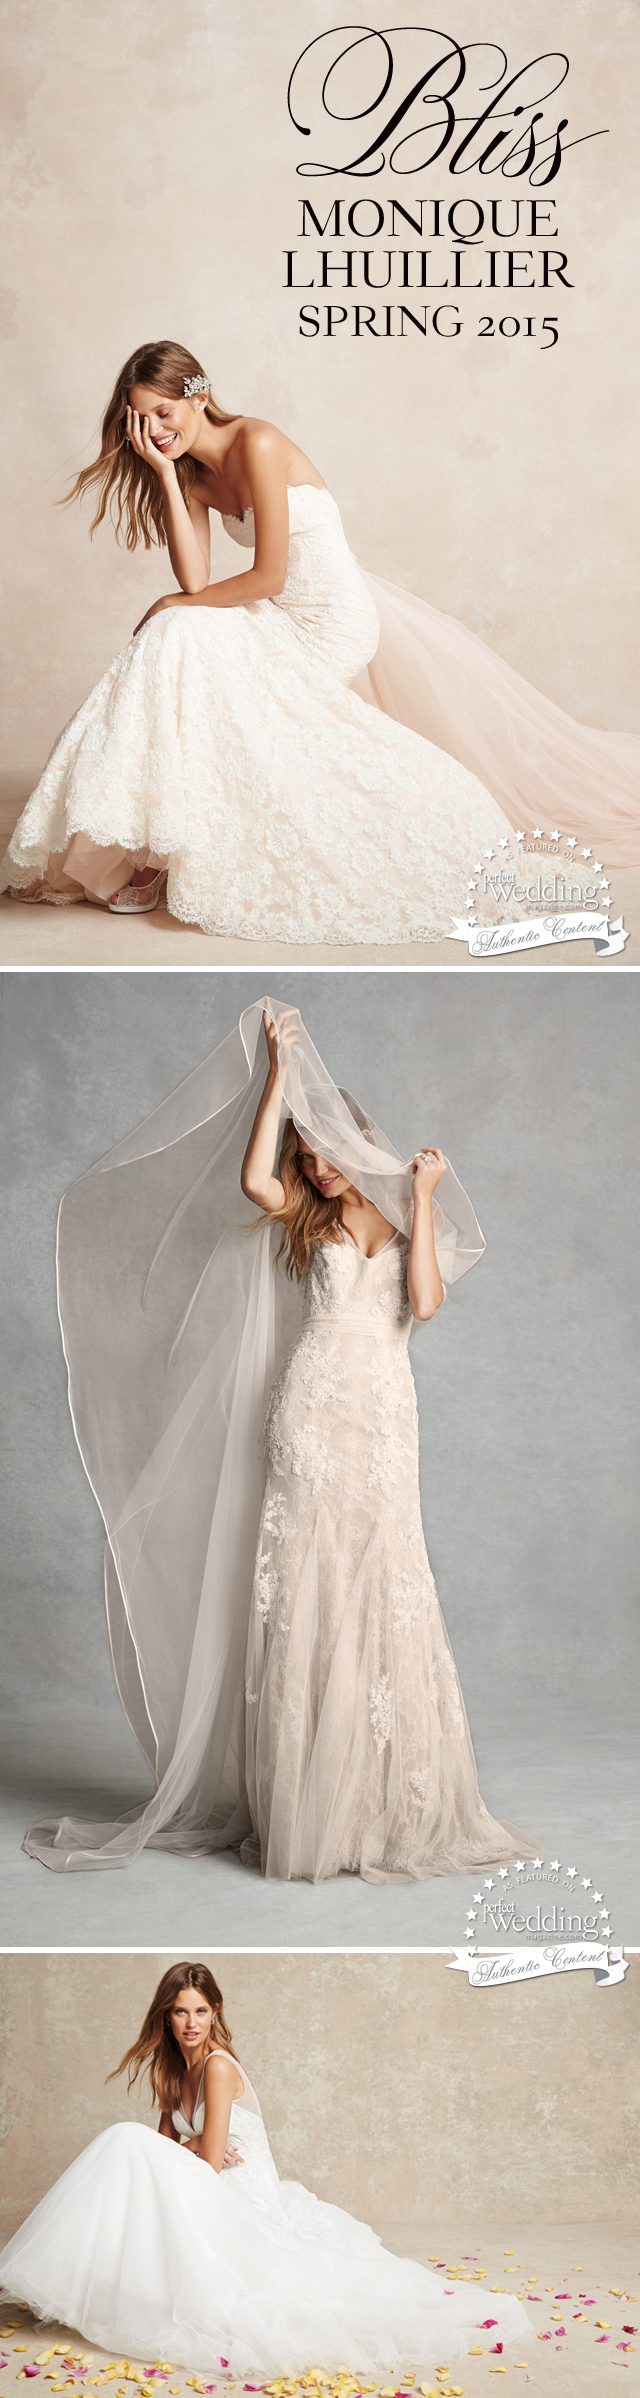 Bliss Monique Lhuillier Spring 2015, Perfect Wedding Magazine, Perfect Wedding Magazine Blog, Spring 2015 Wedding Gowns, Wedding Trends